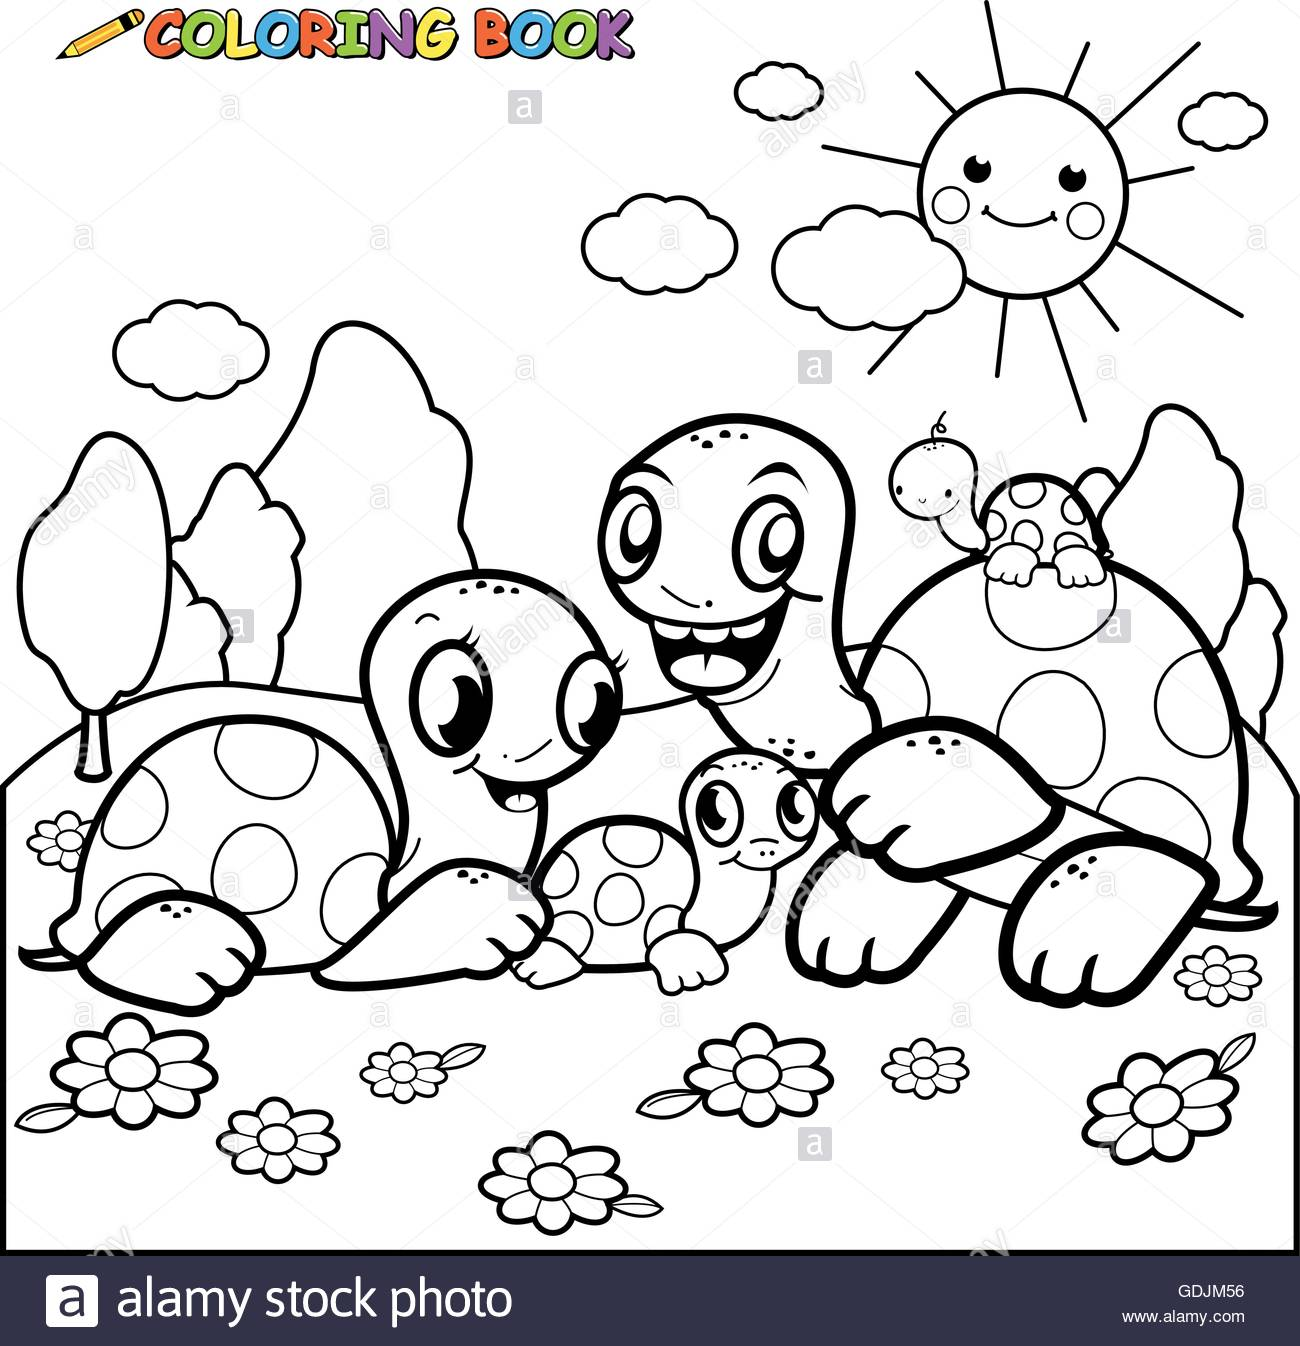 1300x1346 Black And White Outline Image Of A Happy Family Of Turtles Stock